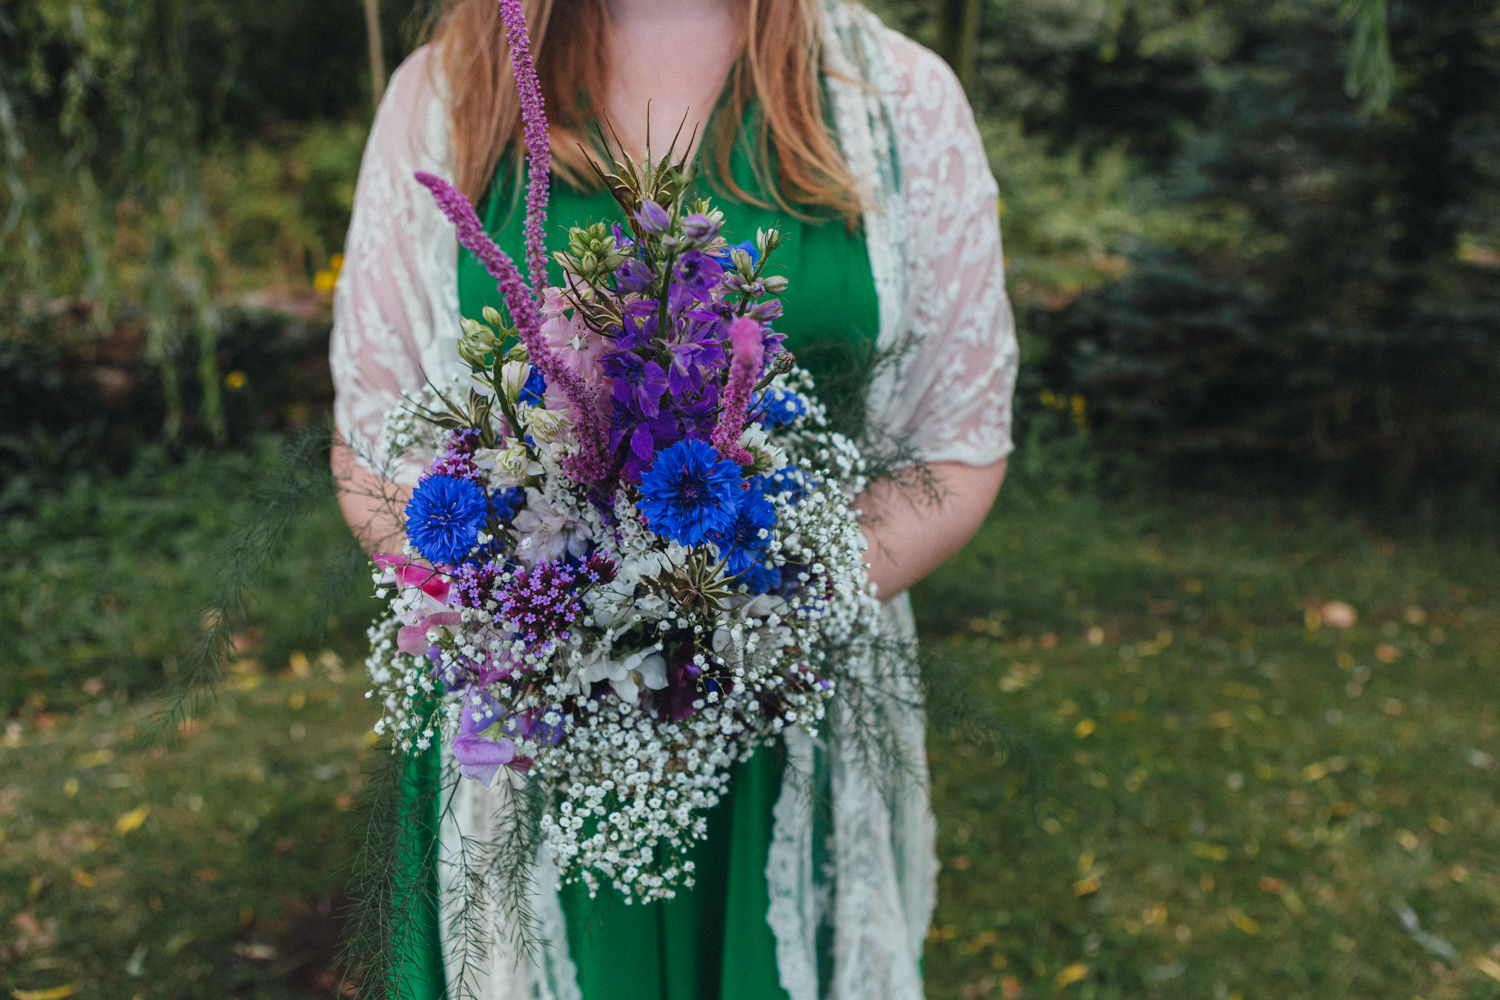 Outdoor Wedding Photography Devon, green wedding dress, eco bride, eco wedding, wildflowers, bouquet, garden